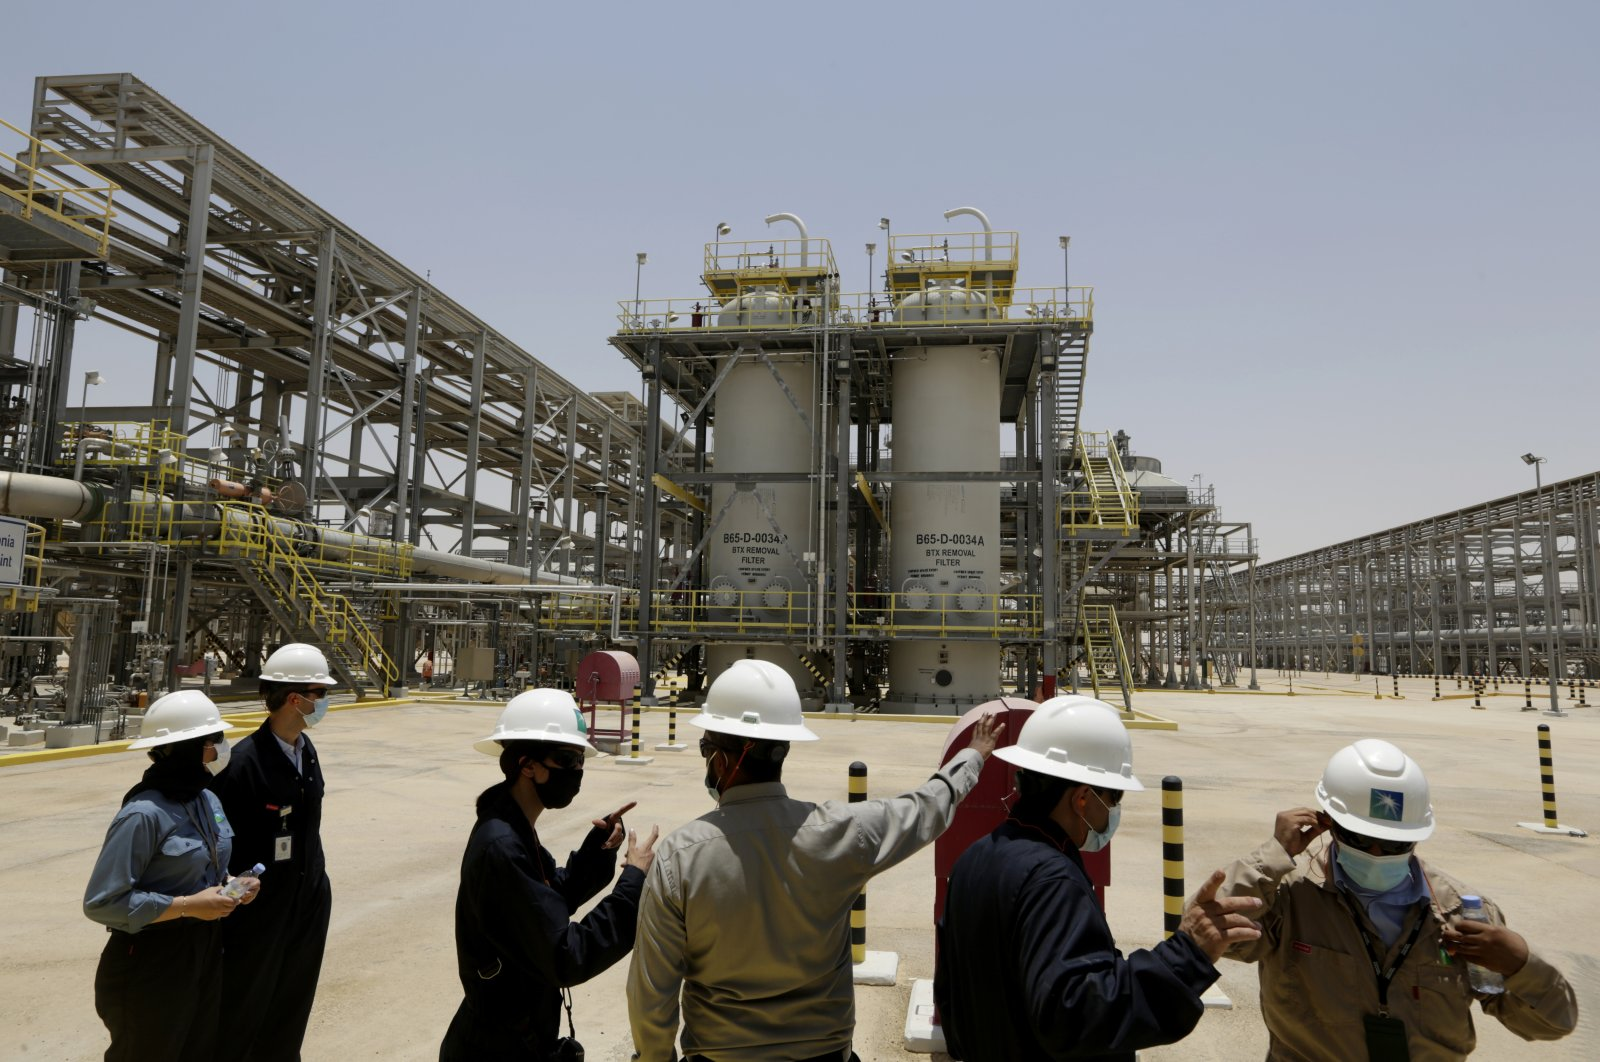 Saudi Aramco engineers and journalists look at the Hawiyah Natural Gas Liquids Recovery Plant, which is designed to process 4.0 billion standard cubic feet per day of sweet gas, a natural gas that does not contain significant amounts of hydrogen sulfide, in Hawiyah, in the Eastern Province of Saudi Arabia, June 28, 2021. (AP Photo)